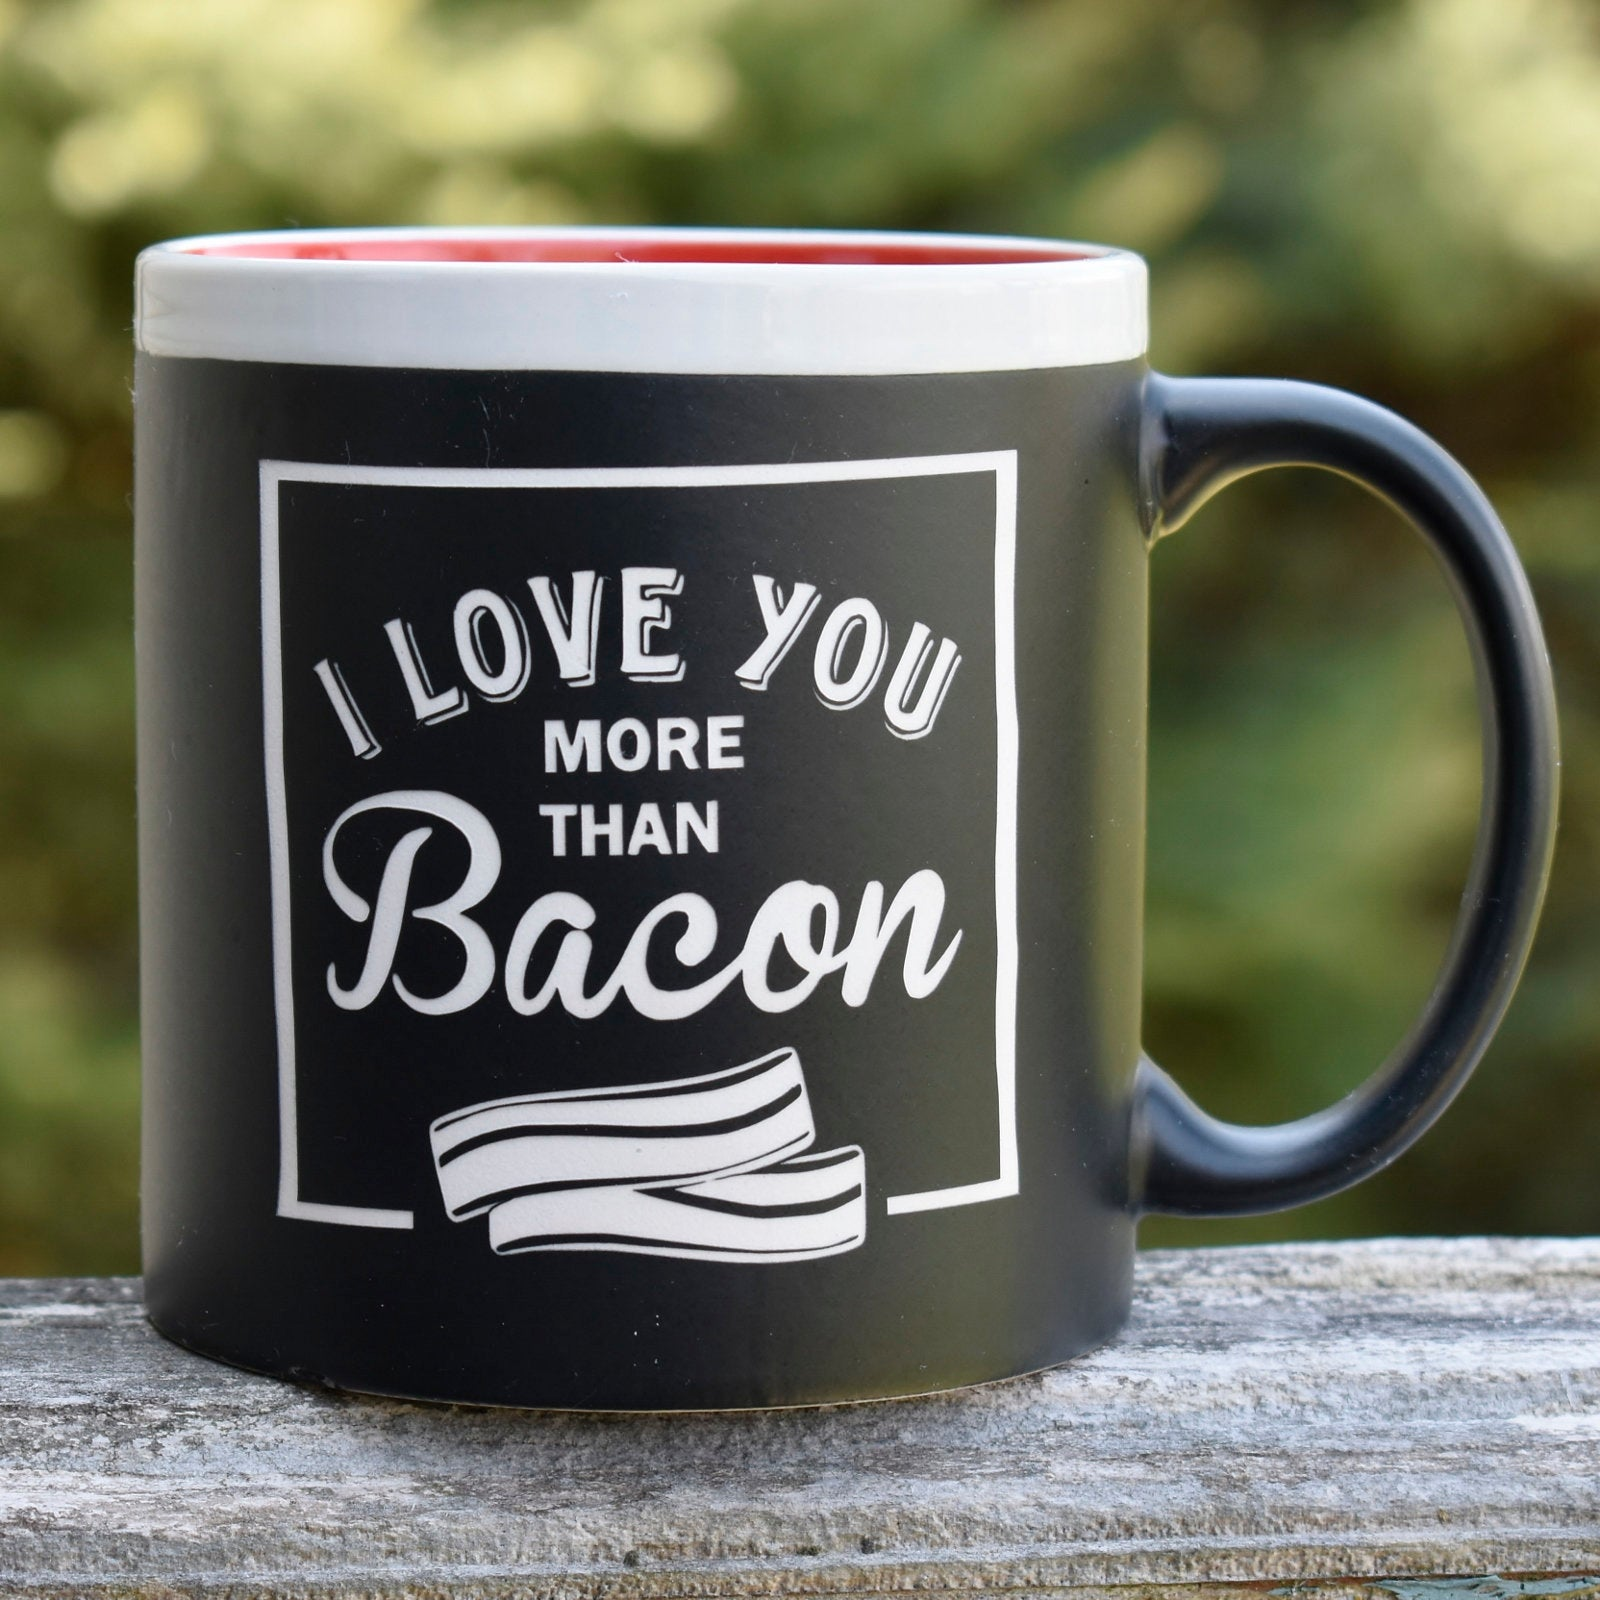 Jumbo Chalkboard I Love You More Than Bacon Coffee Mug | Funny Coffee Mug | Bacon Lover | Father's Day Gift | Camper Gift | Camping Gift